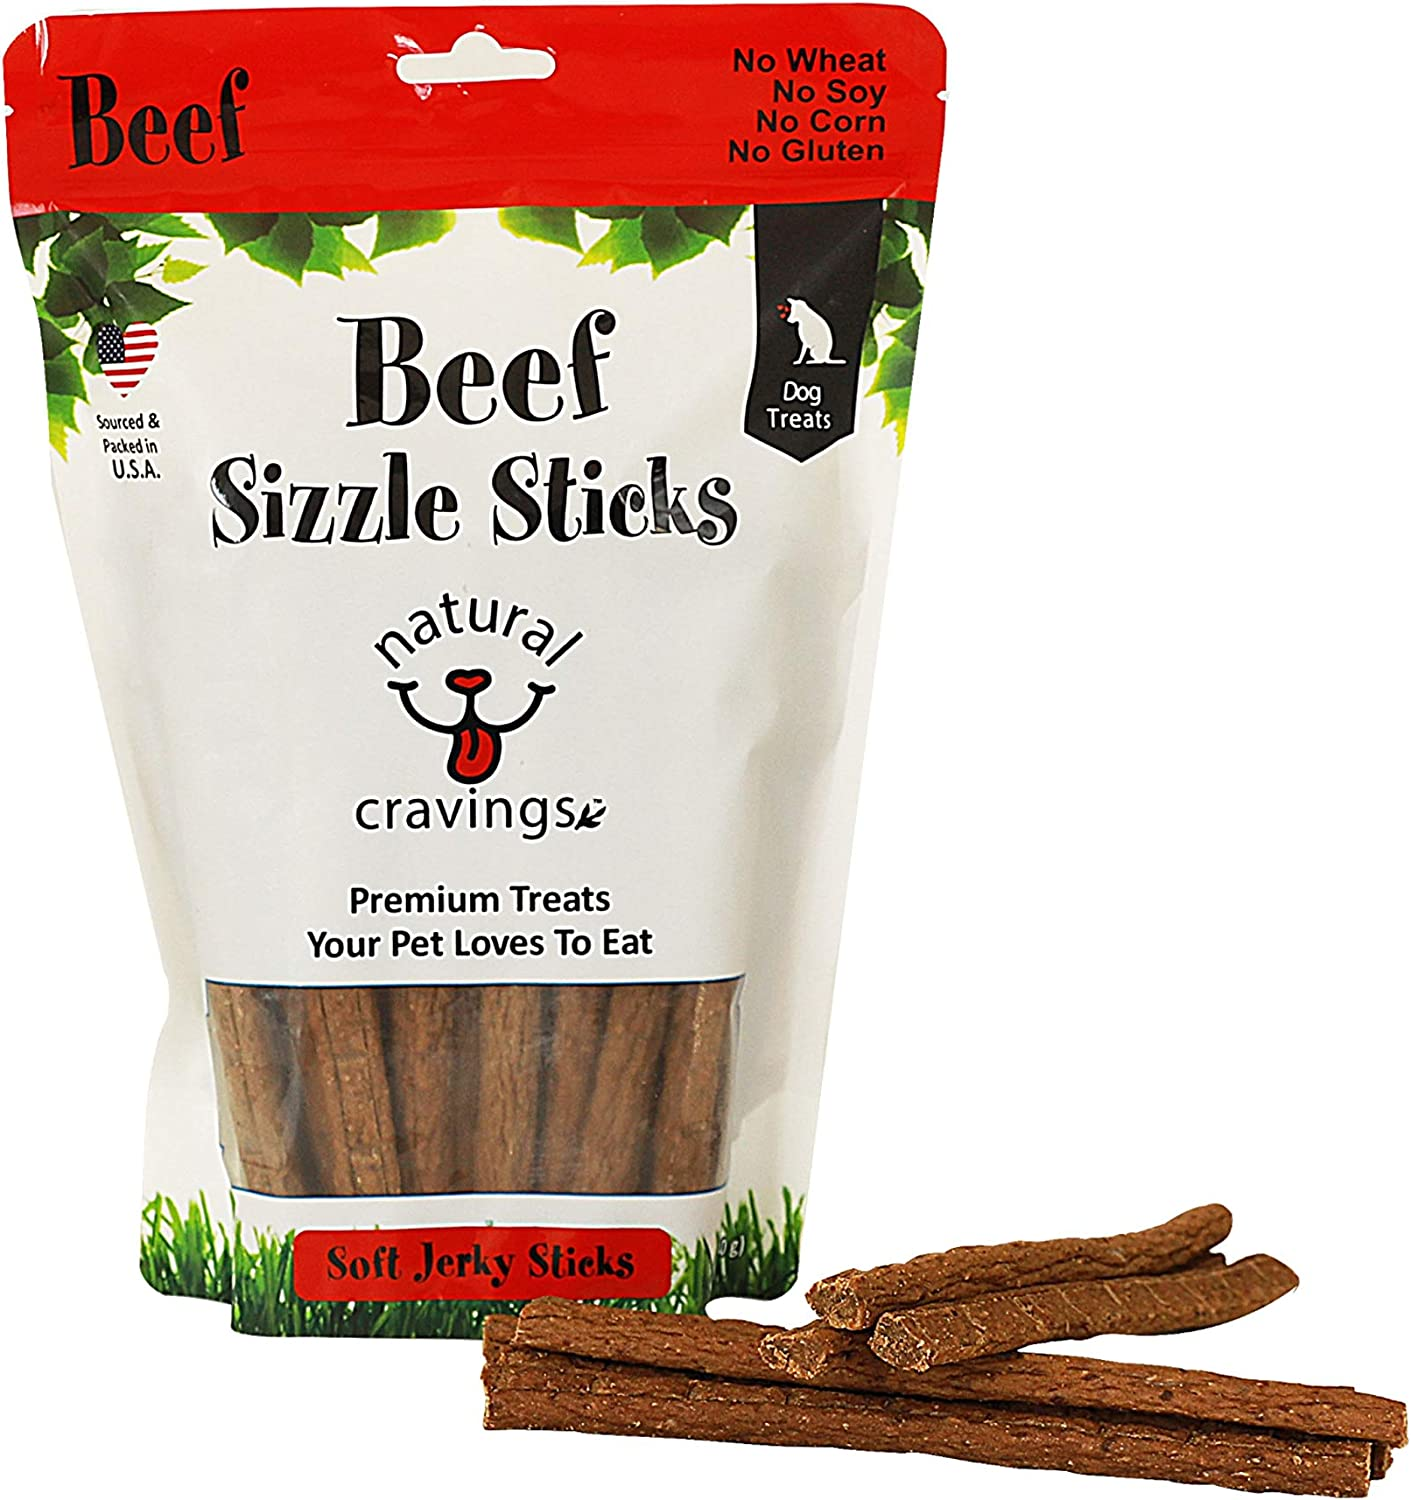 Natural Cravings Sizzle Sticks Special price for a limited time Jerky Discount is also underway Dog Bag P oz. Treats 12